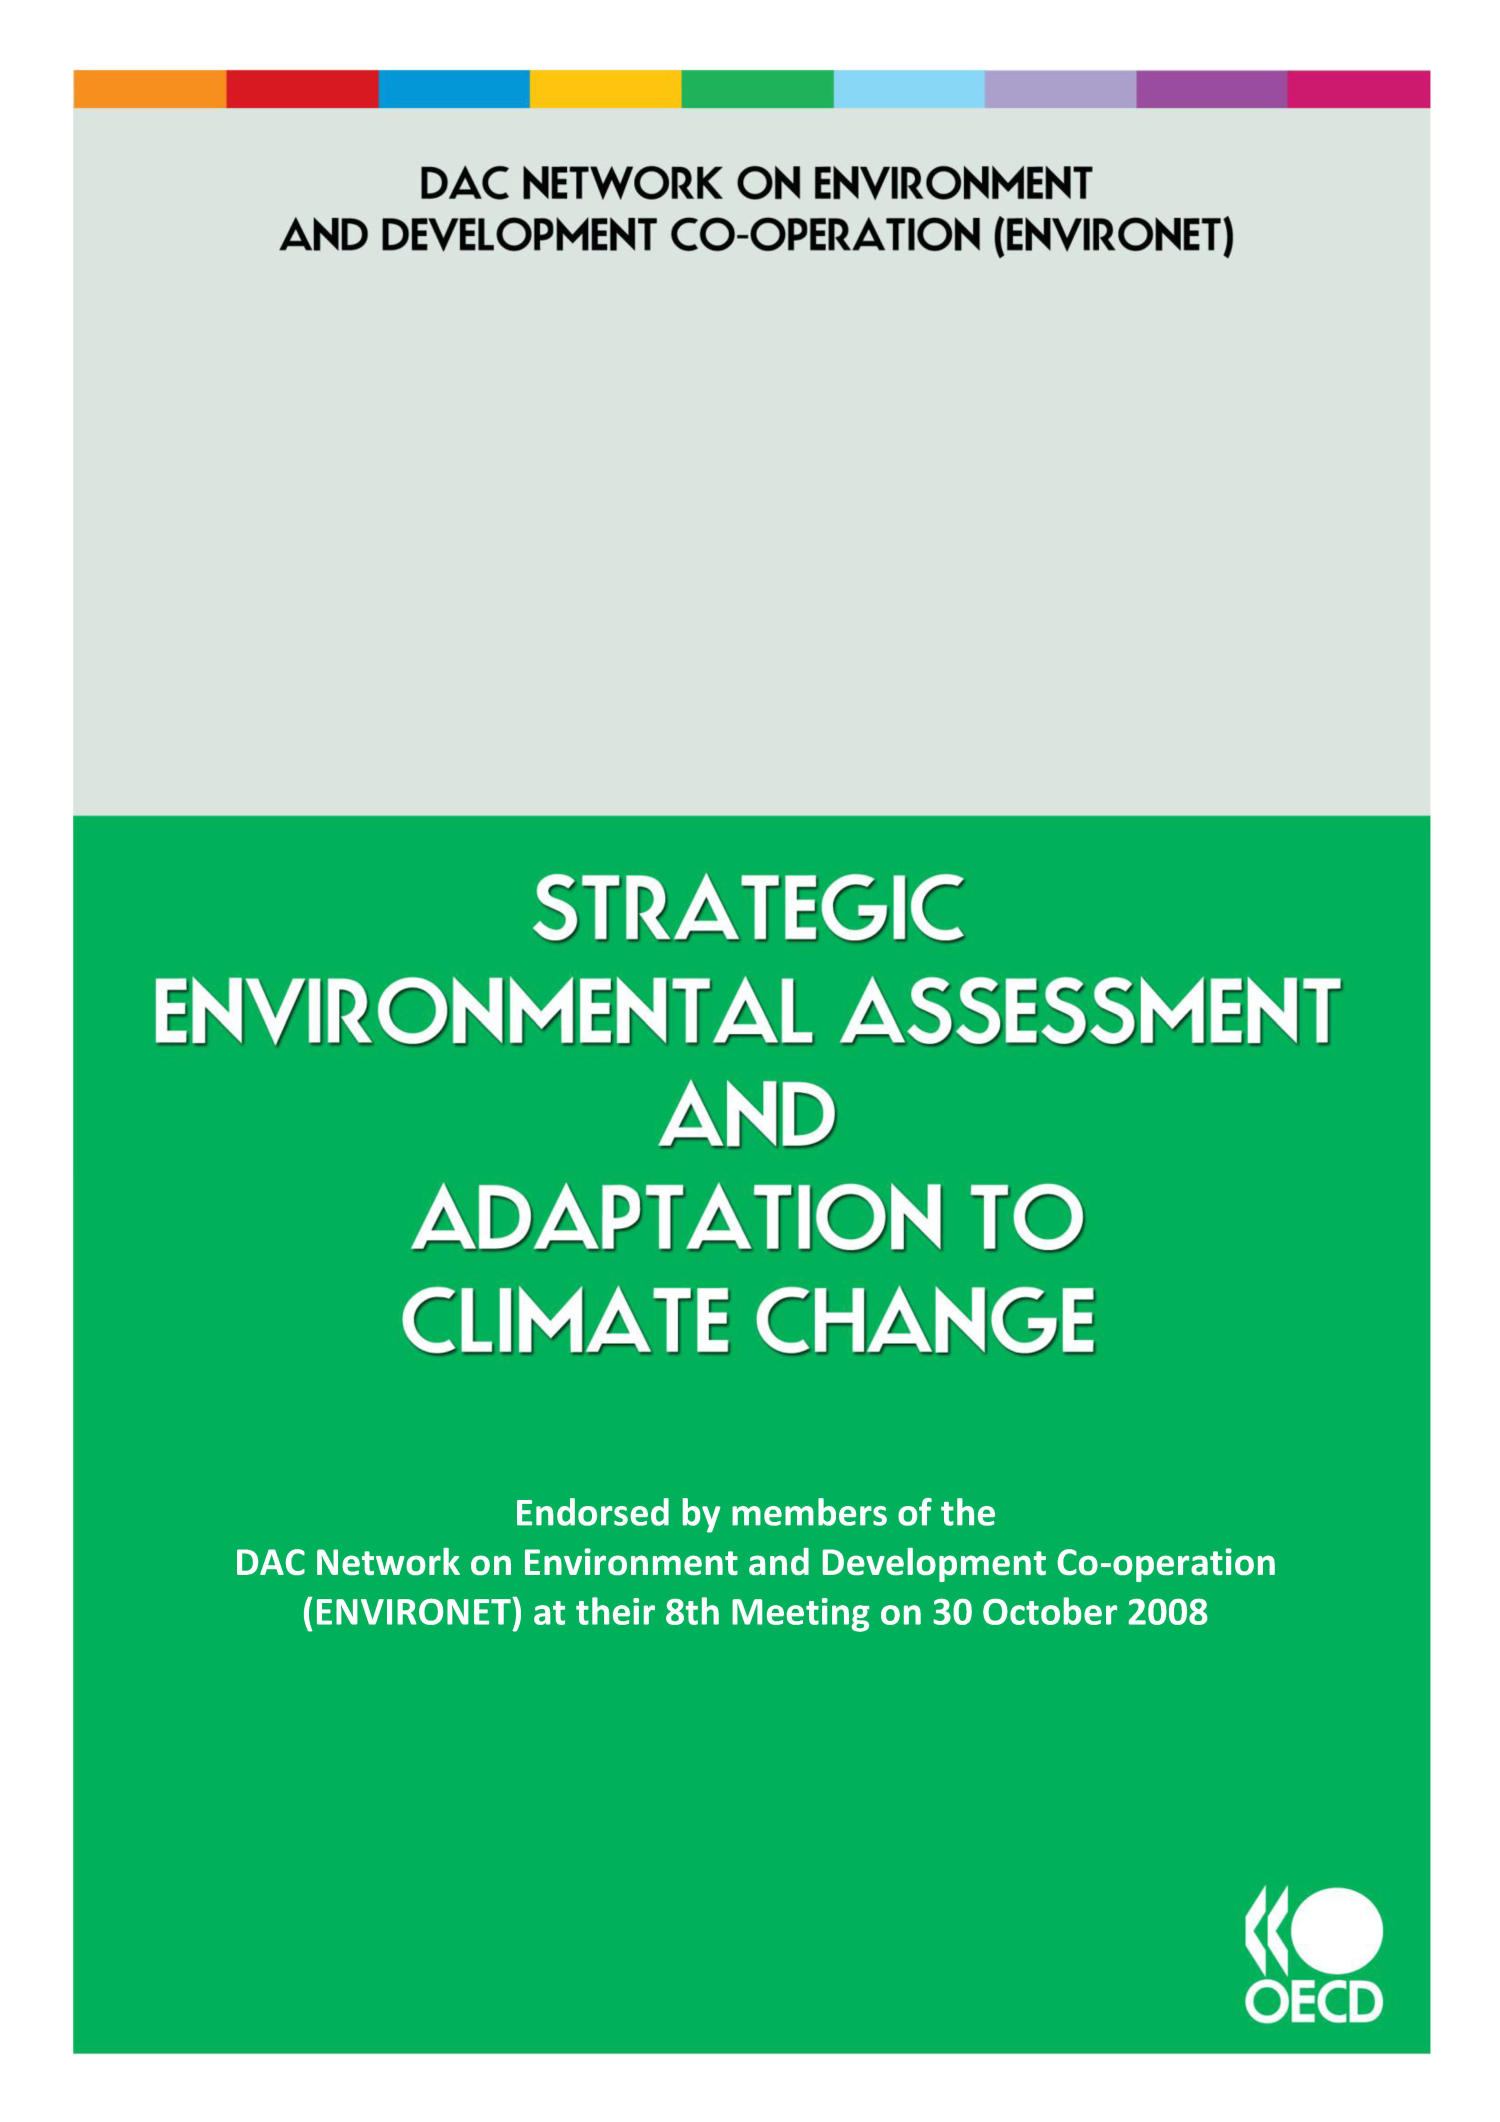 Strategic Environmental Assessment and Adaptation to Climate Change                                                                                                      Front Cover